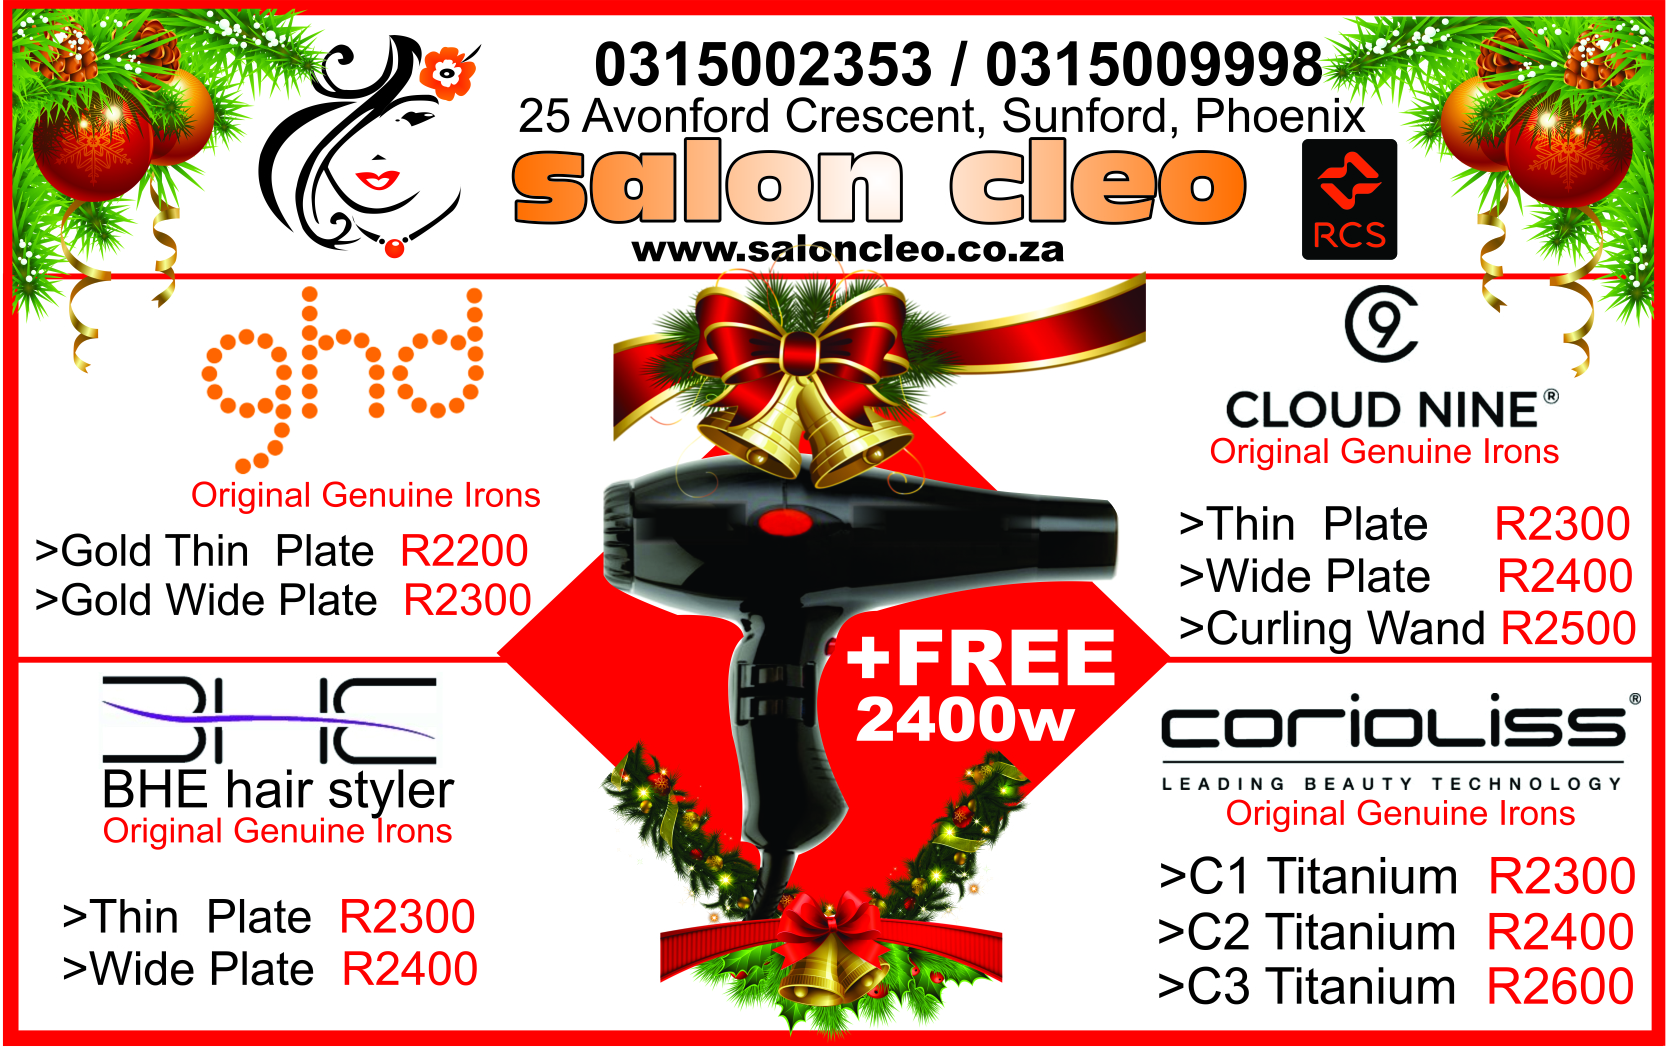 christmas specials at  salon cleo hair iron christmas packs on ghd cloudnine hair irons at salon cleo christmas hair iron specials on coriolliss irons christmas salon on bhe and cloud 9 hair irons in durban salon cleo 0315009998